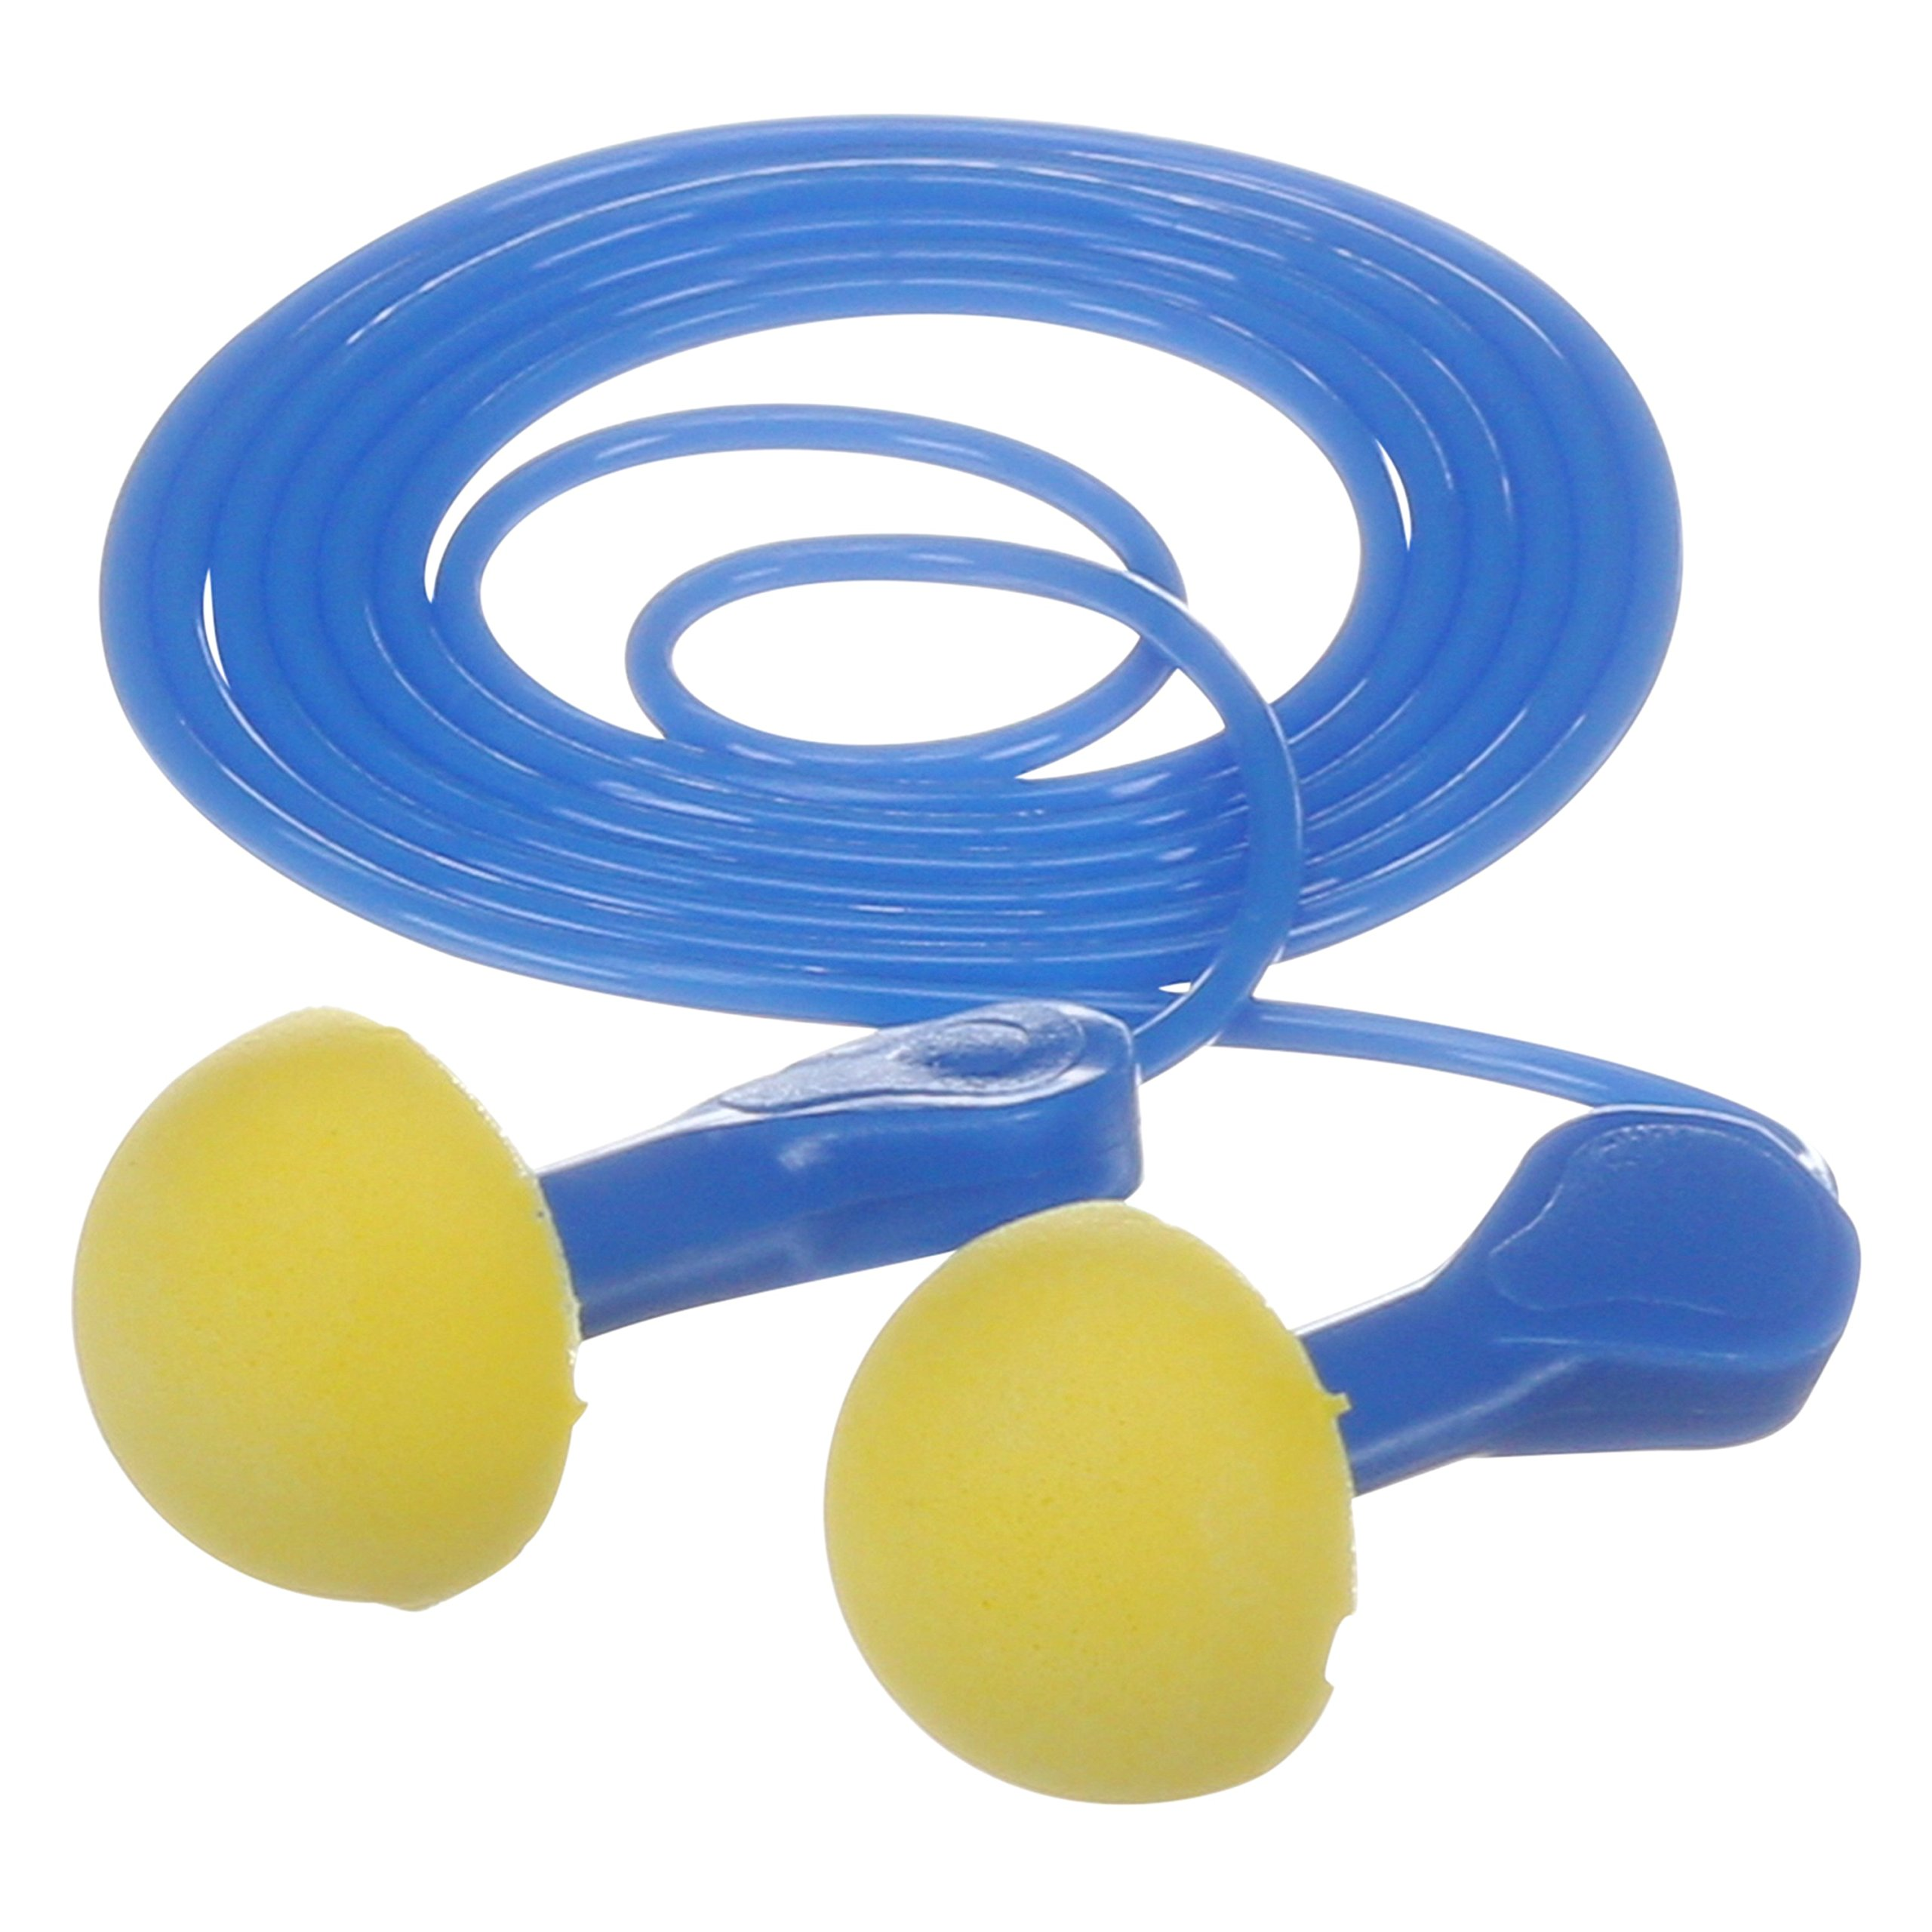 3M E-A-R Express Pod Plugs Corded Earplugs, Hearing Conservation Blue Grips 311-1114 in Pillow Pack (Pack of 100) by 3M Personal Protective Equipment (Image #2)